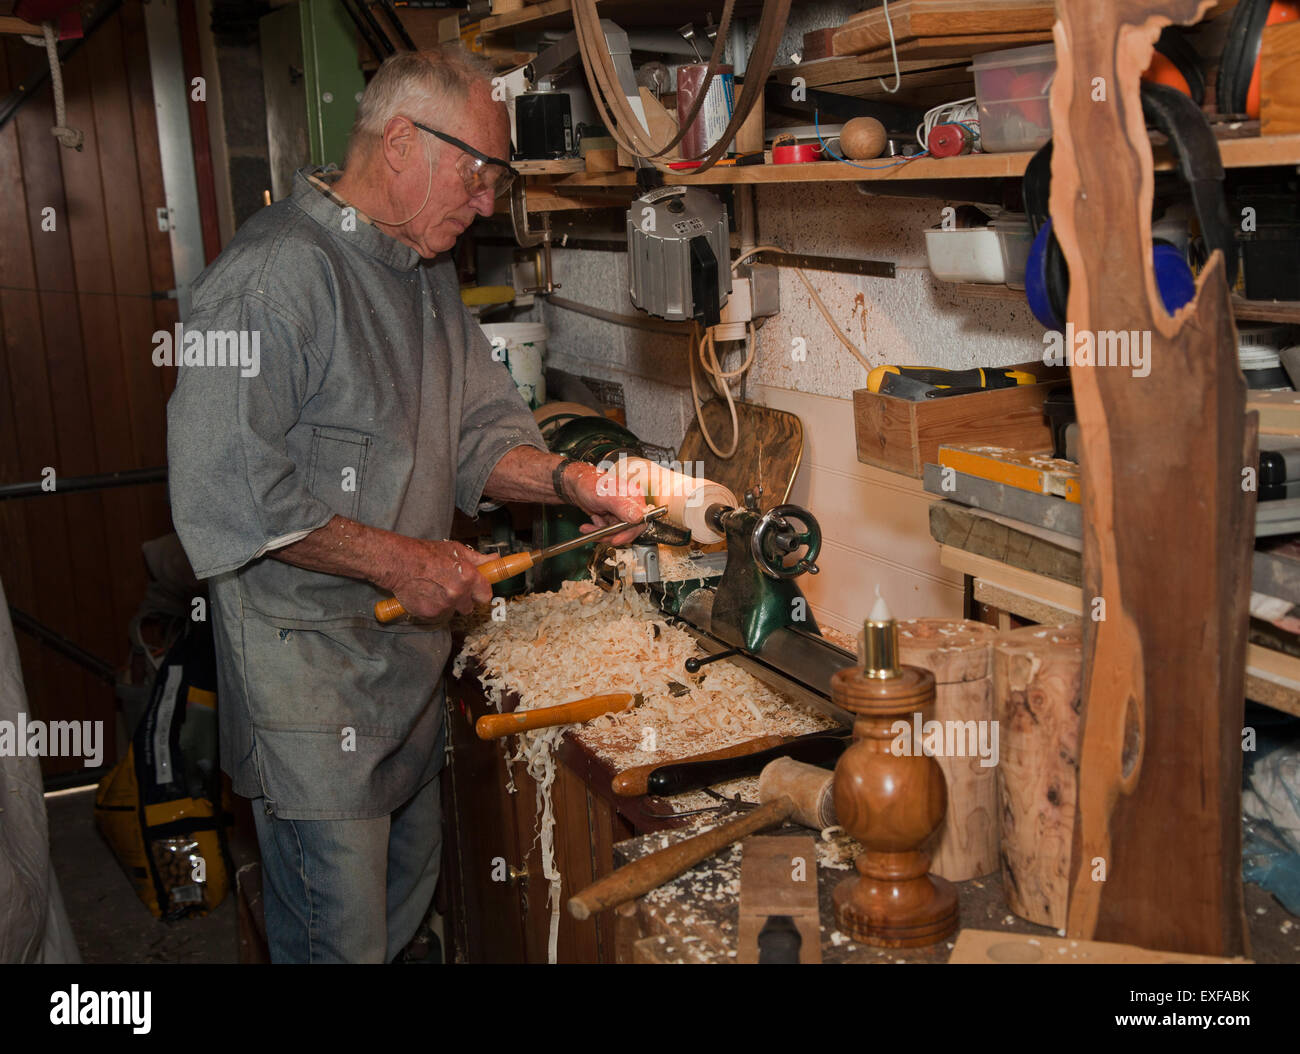 Senior man shaping piece of wood with carpentry tools - Stock Image